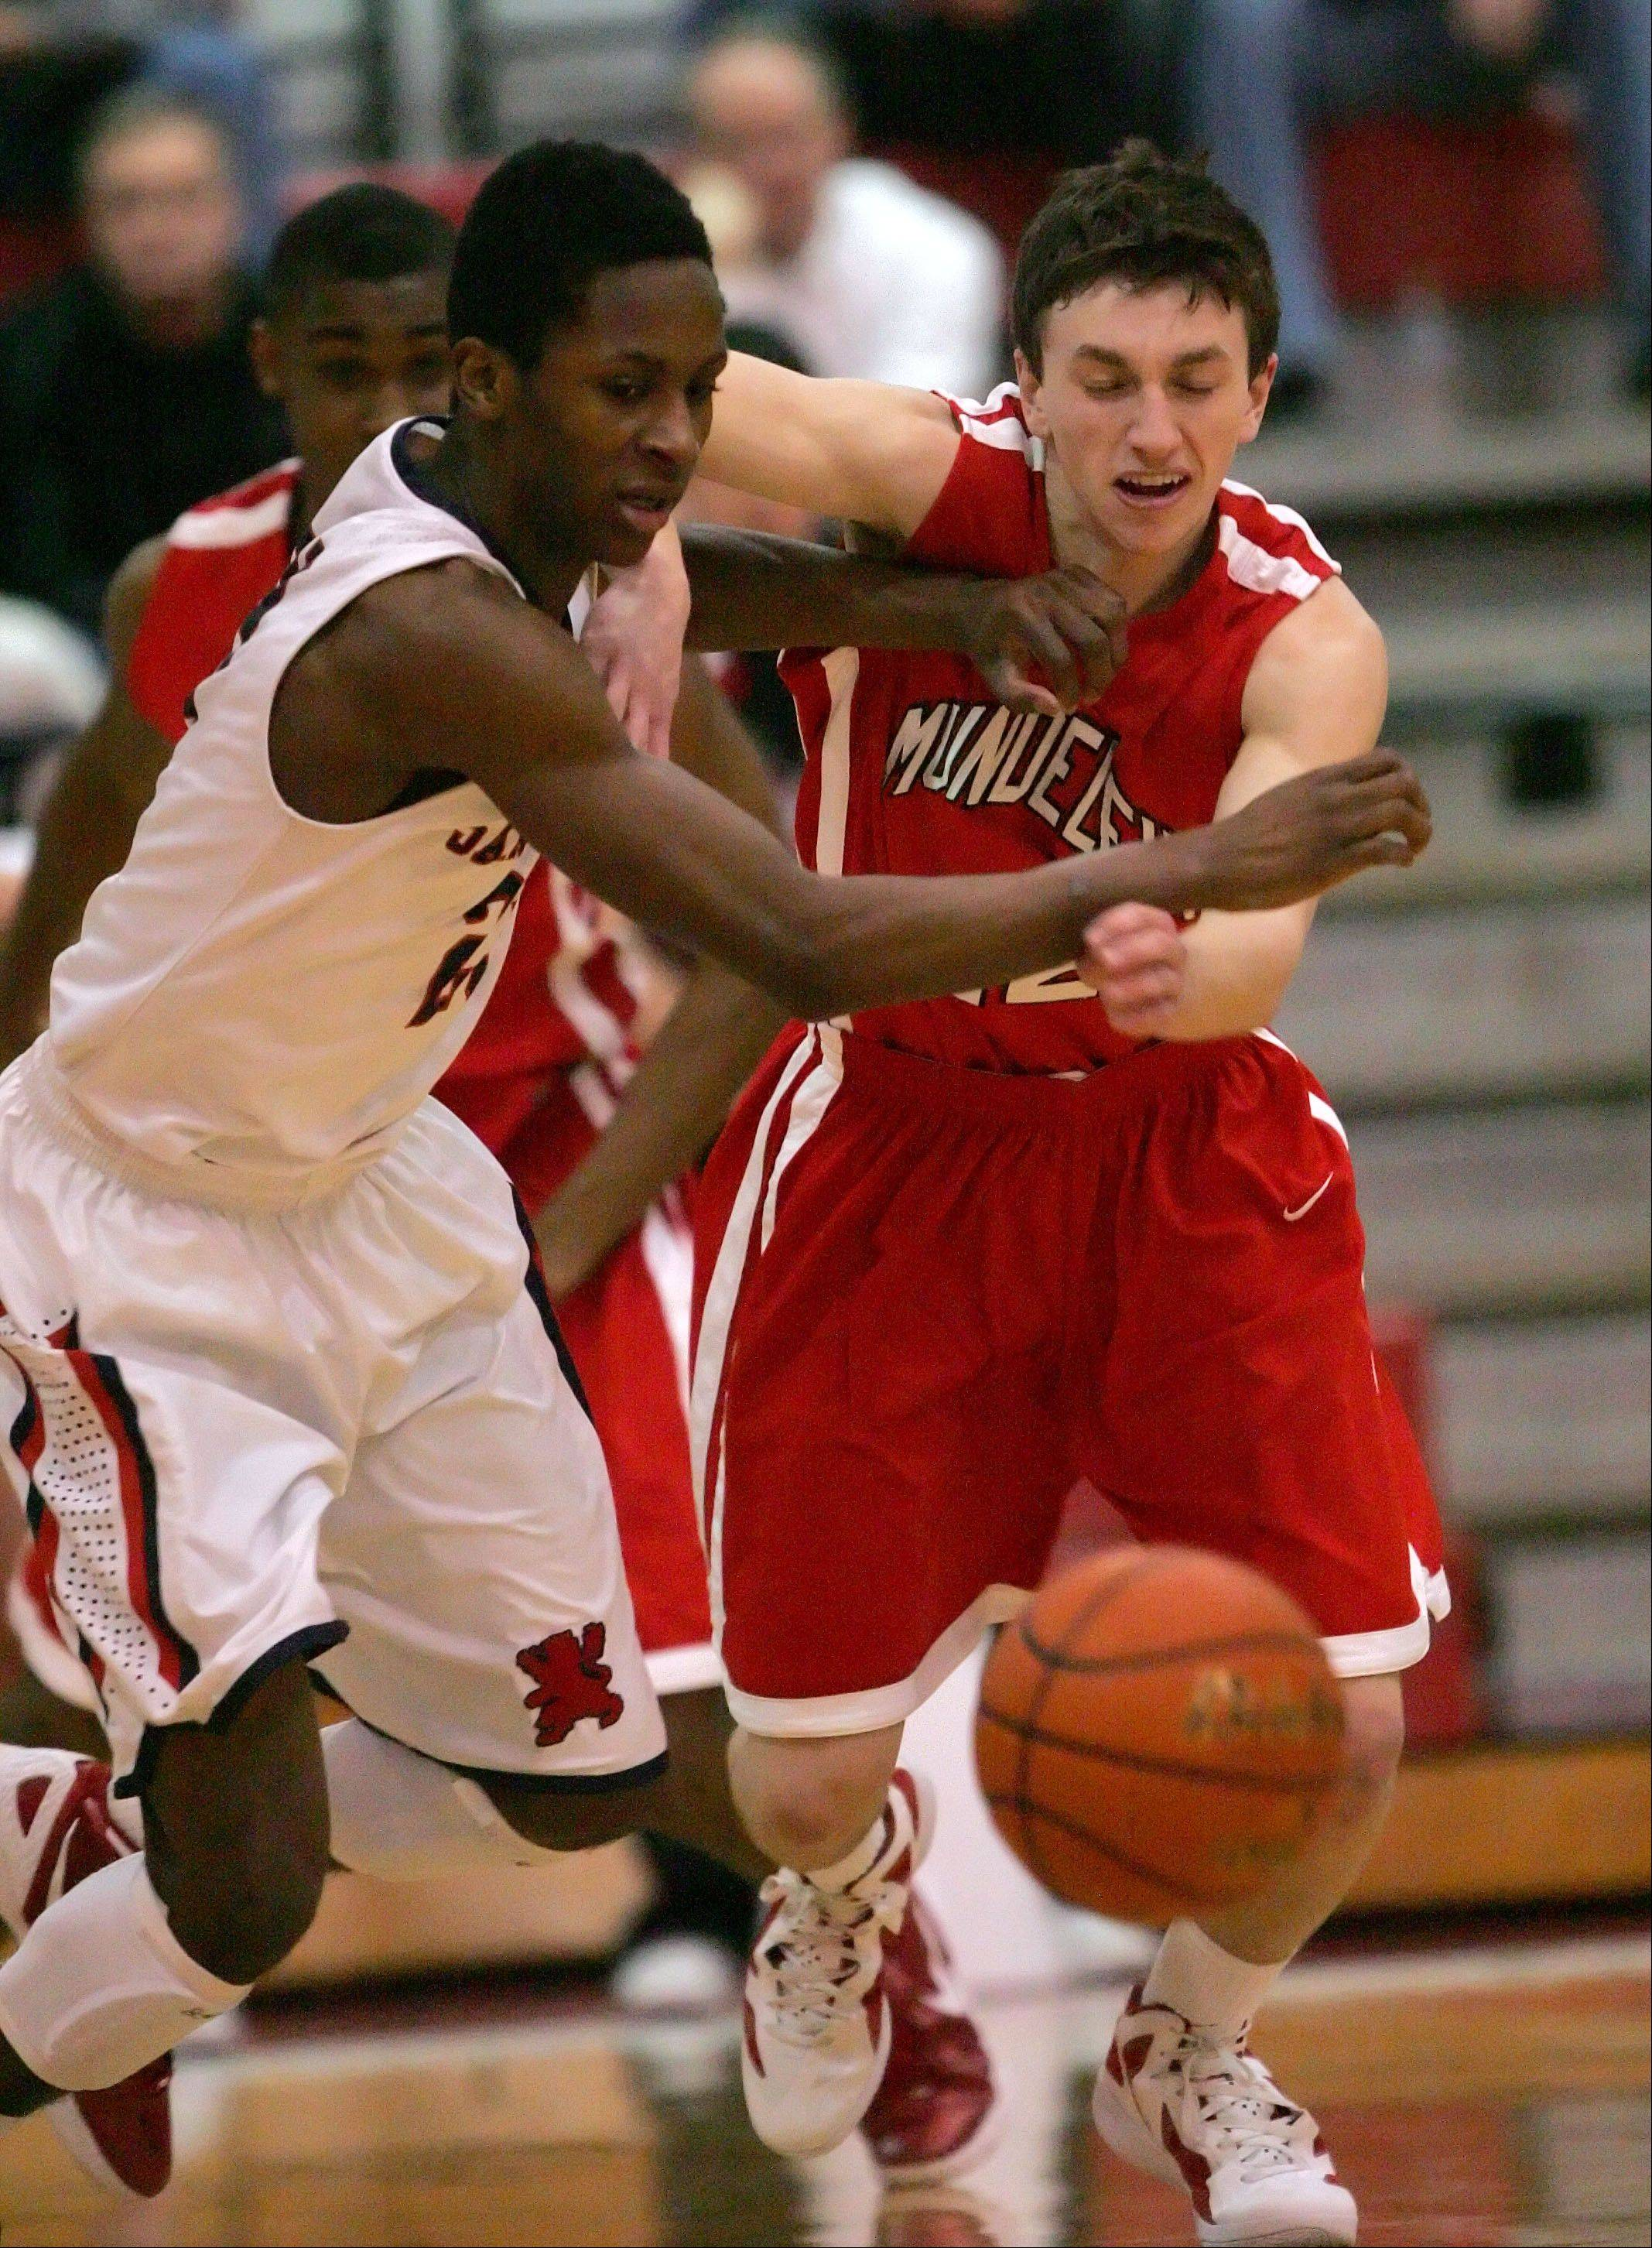 St. Viator's Ore Arogundale, left, and Mundelein's Quinn Pokora battle for a loose ball.